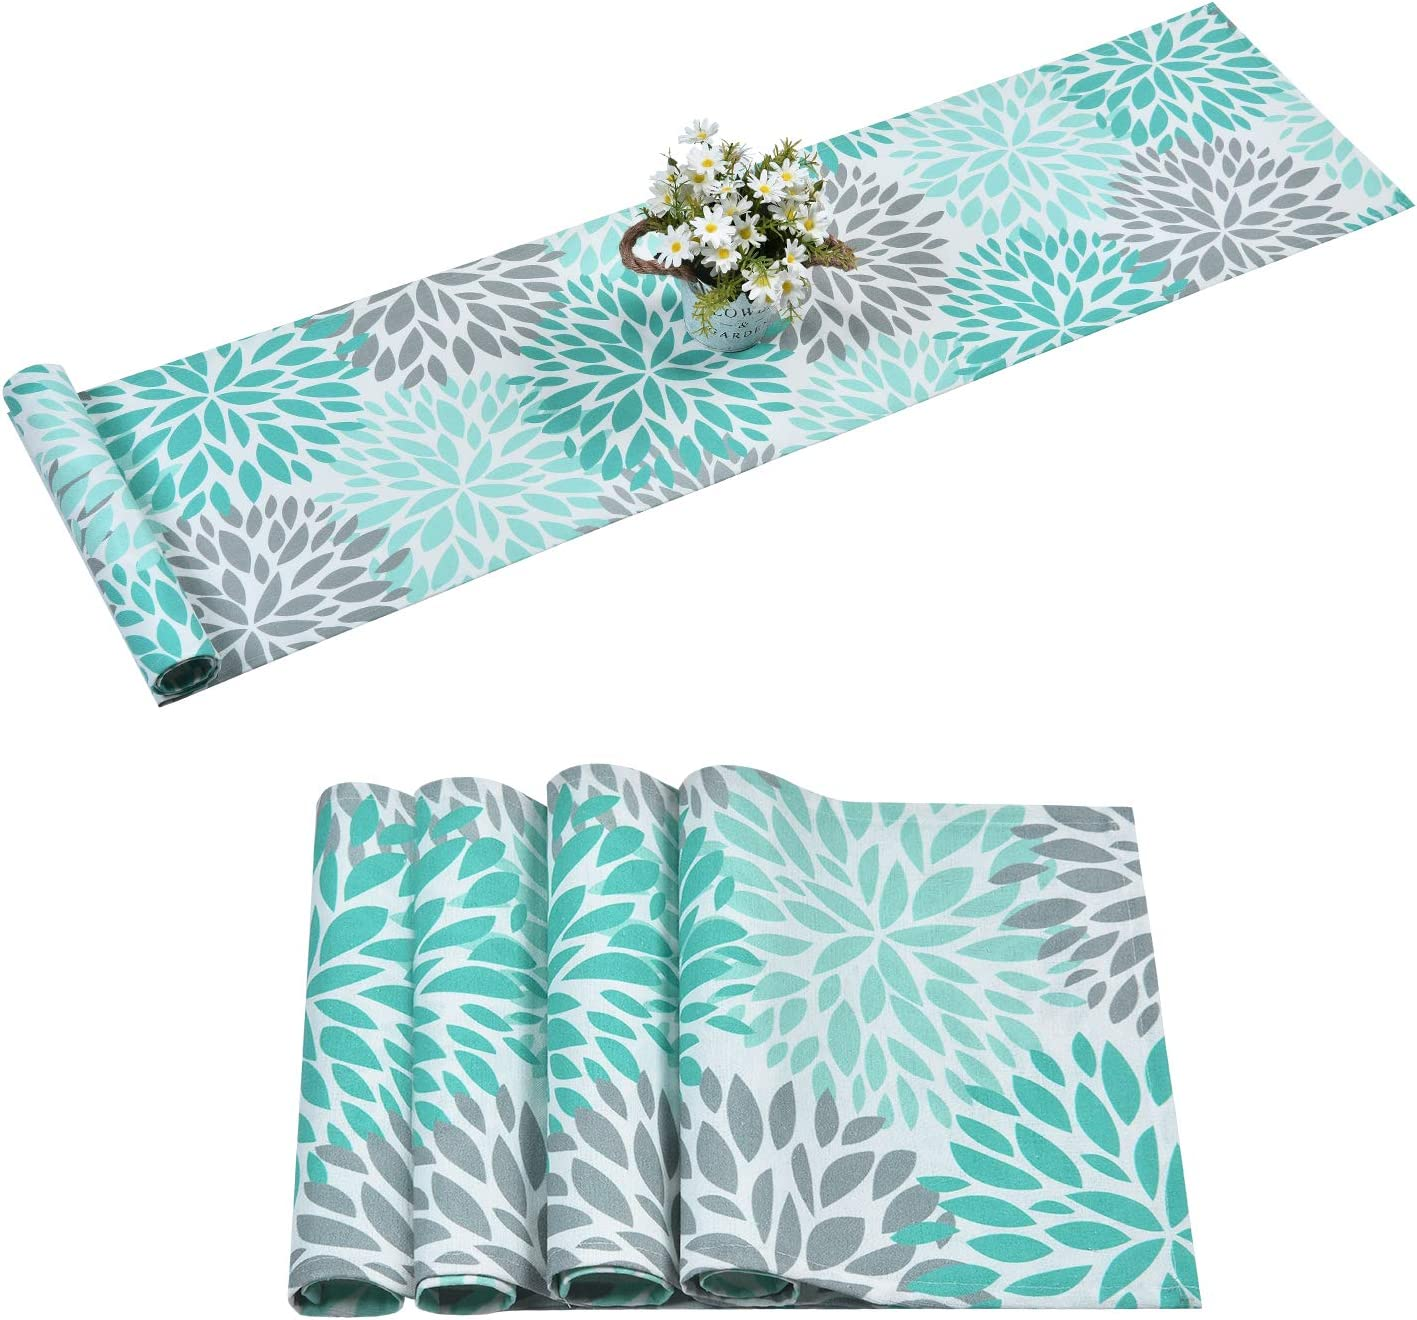 Alishomtll Dahlia Pinnata Table Runner with 4 Placemats Green Gray Print Flower Table Runners Set Top Decor for Dinner Parties, Catering Events, Wedding, Indoor and Outdoor Parties